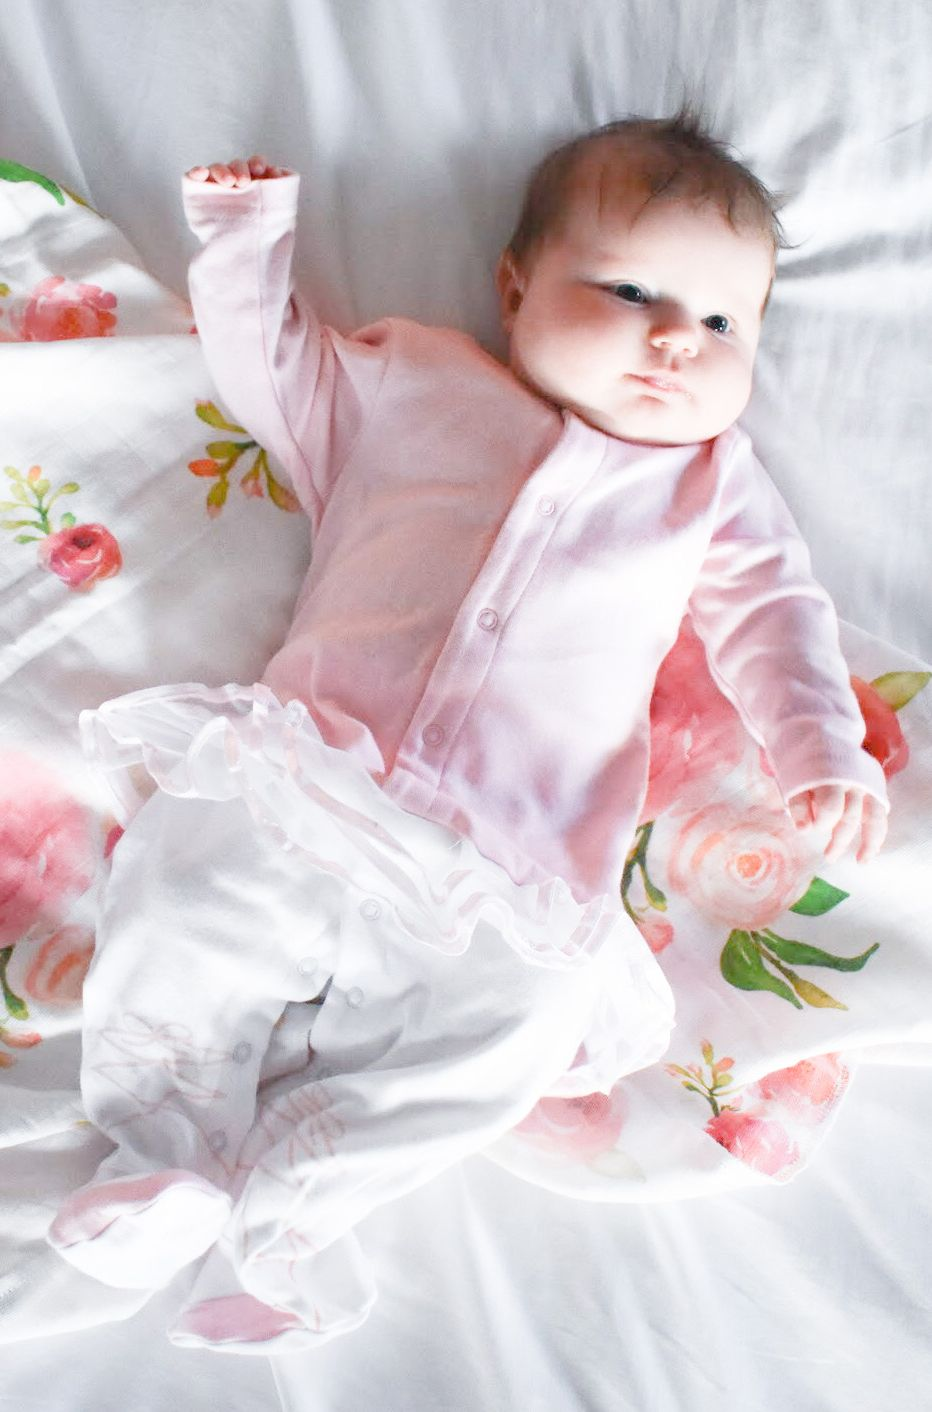 Blair is already working on her turn out and pirouettes in this Baby Ballerina costume! | Adorable Baby Halloween Costume Inspirations | Baby Aspen & Adorable Baby Costume Ideas for Halloween | Pinterest | Baby aspen ...